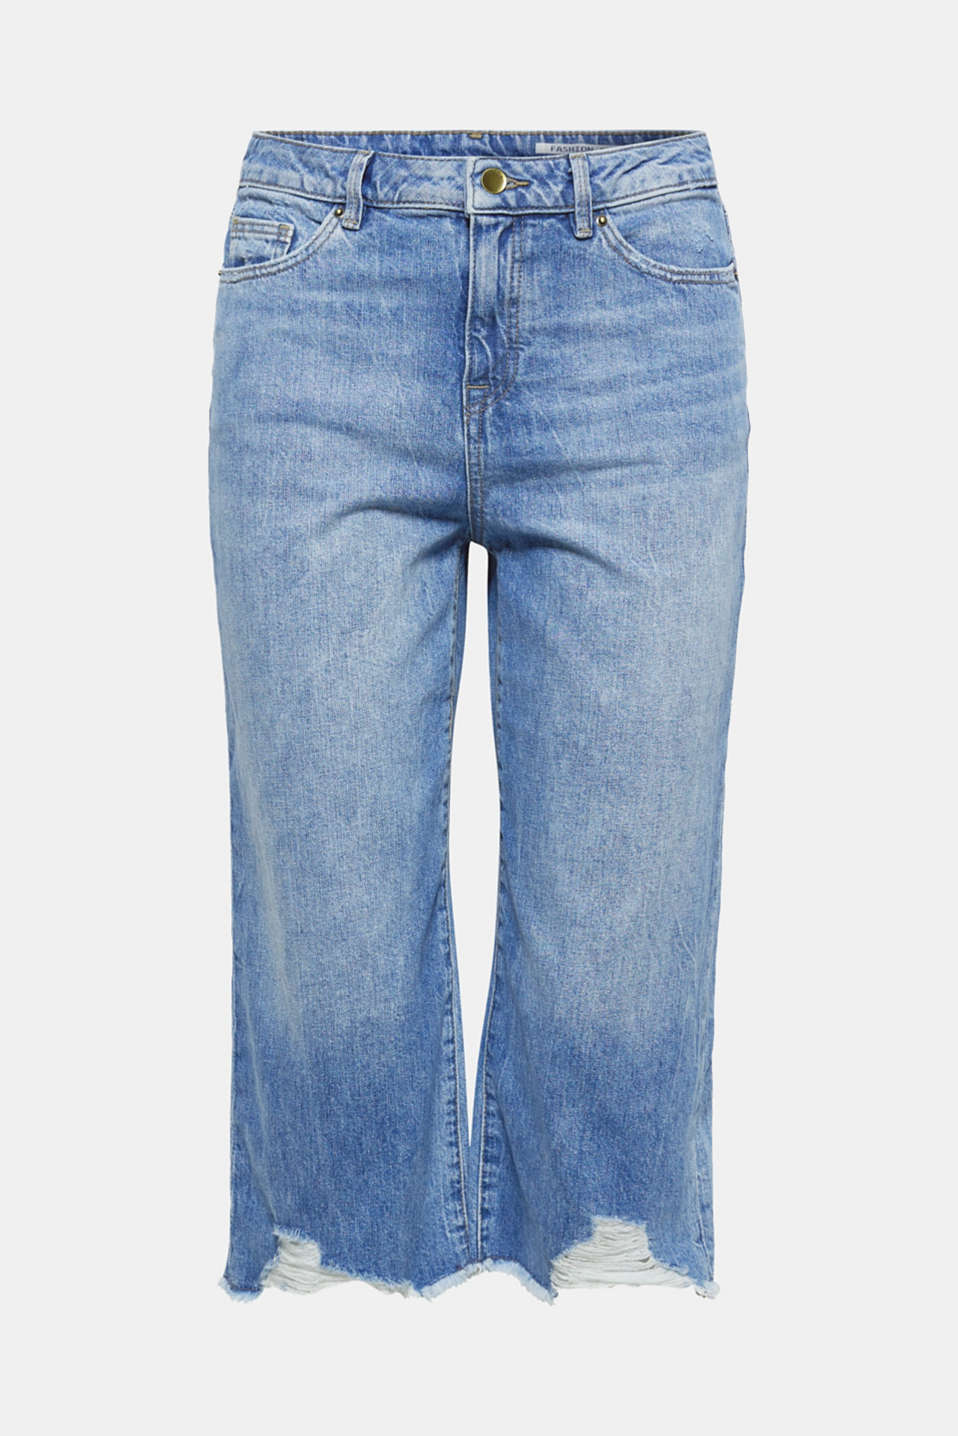 These jeans are a stylish fashion piece in a 7/8 length with a wide leg and super casual frayed hems.